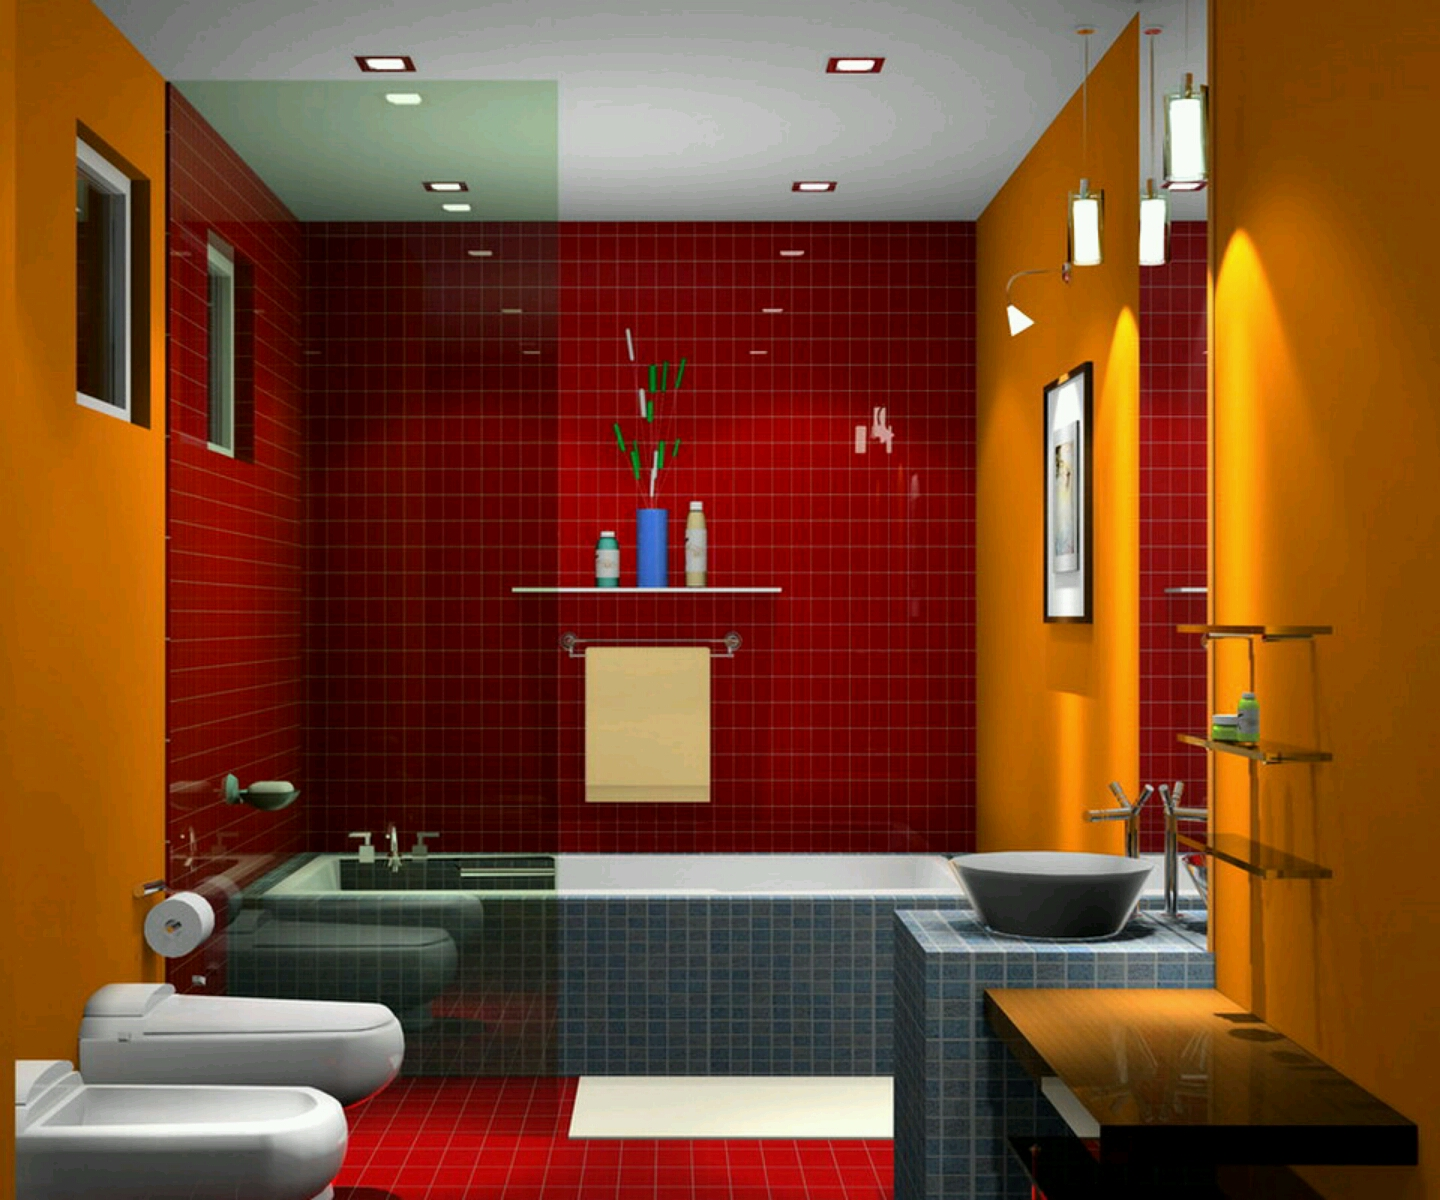 New home designs latest luxury bathrooms designs ideas for Latest bathroom designs